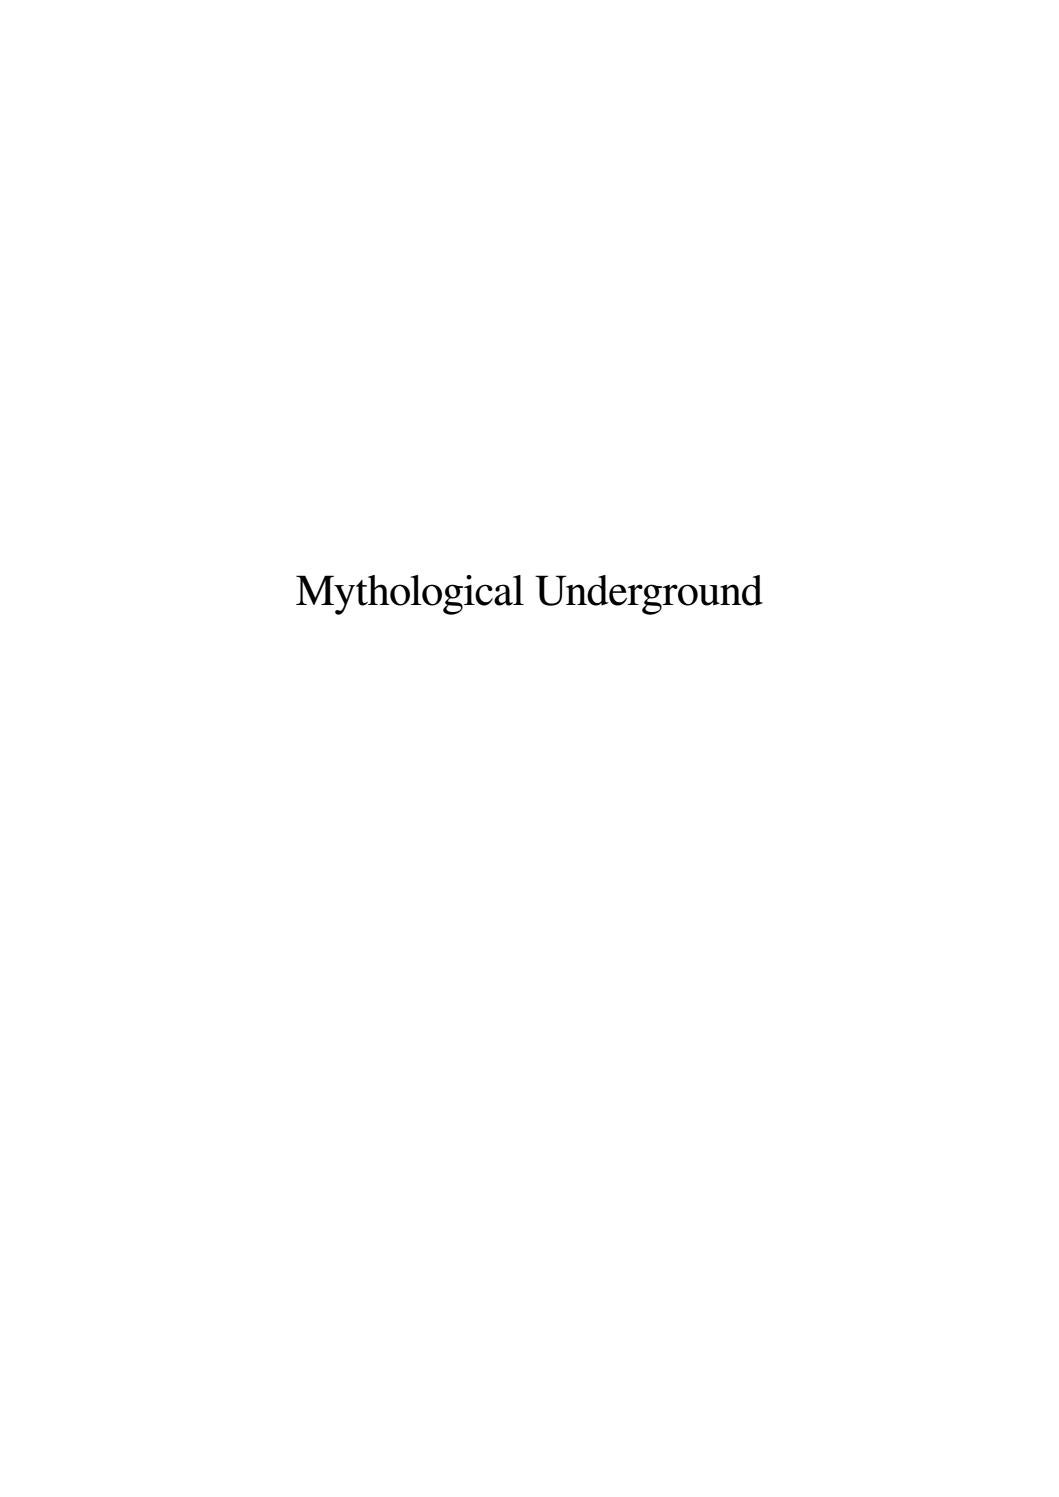 Mythological Underground 2 By Procedural Issuu